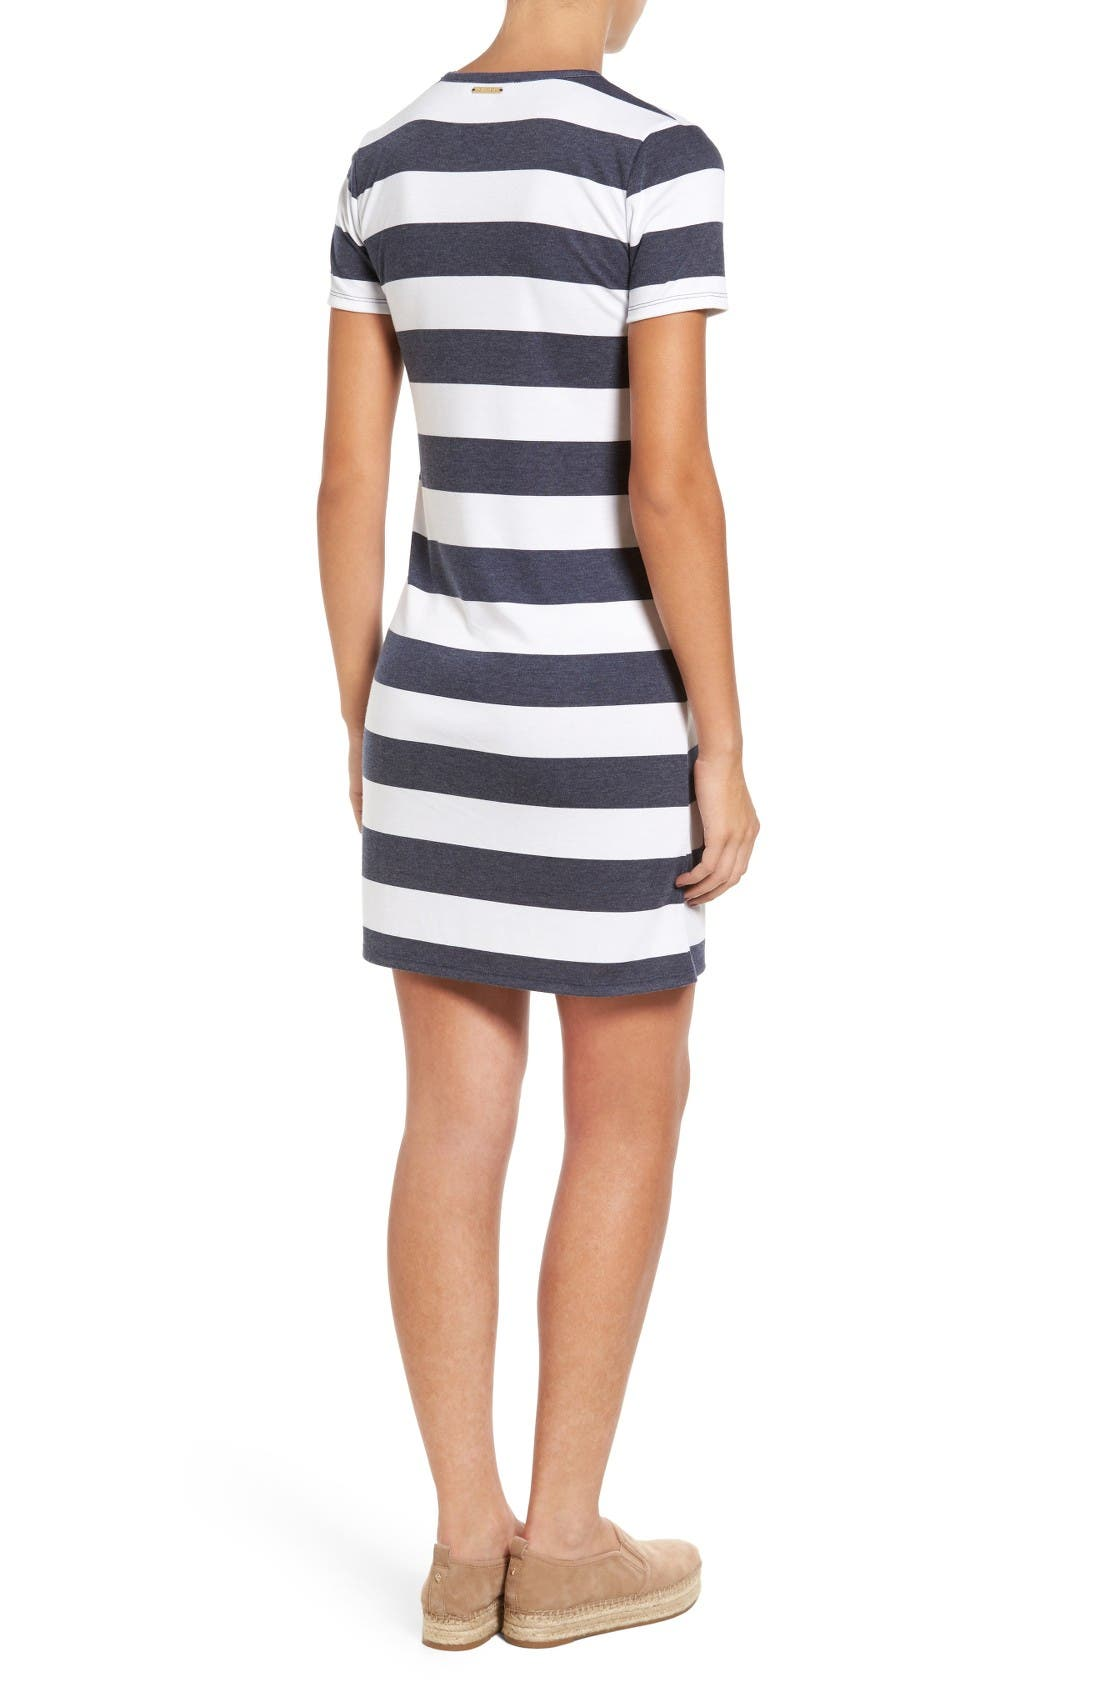 Alternate Image 2  - MICHAEL Michael Kors Rugby Stripe T-Shirt Dress (Regular & Petite)